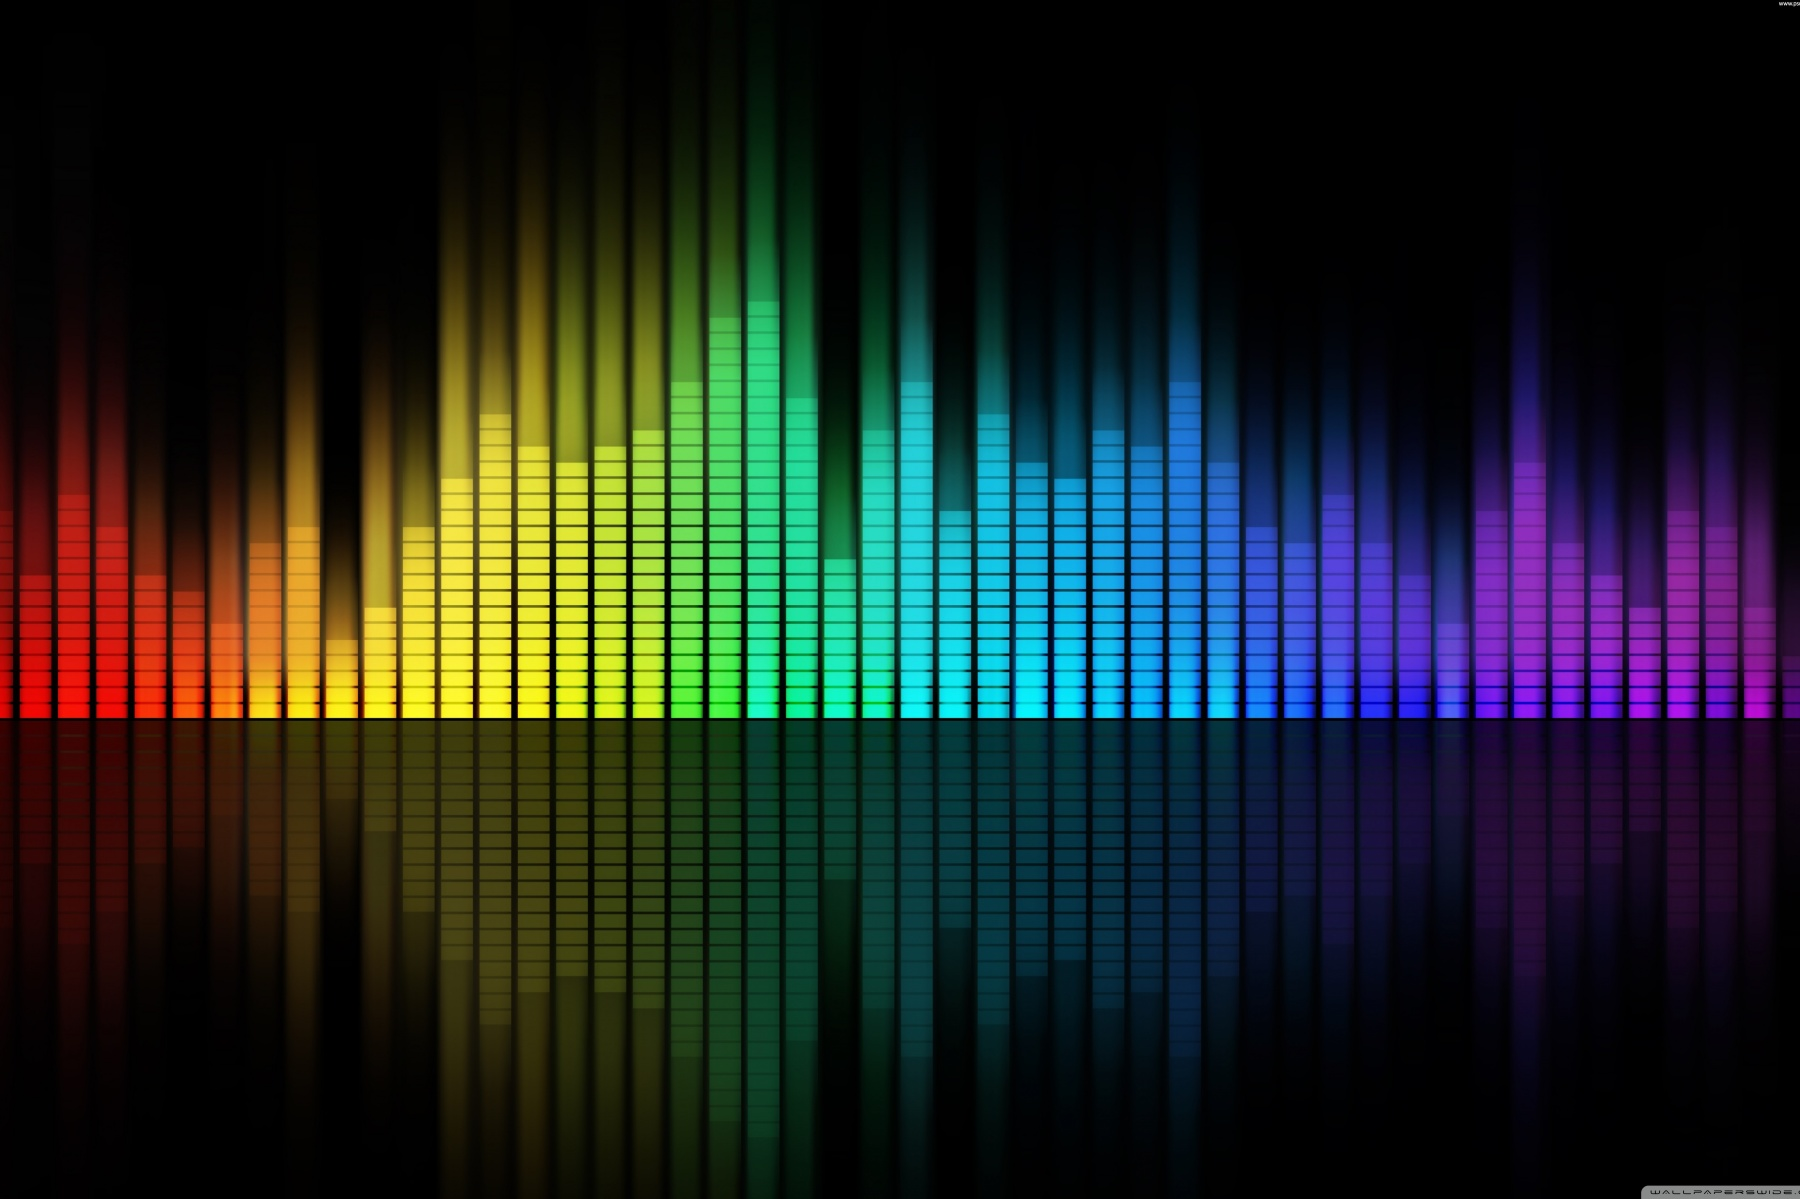 music production essays Essays - largest database of quality sample essays and research papers on music production essays.